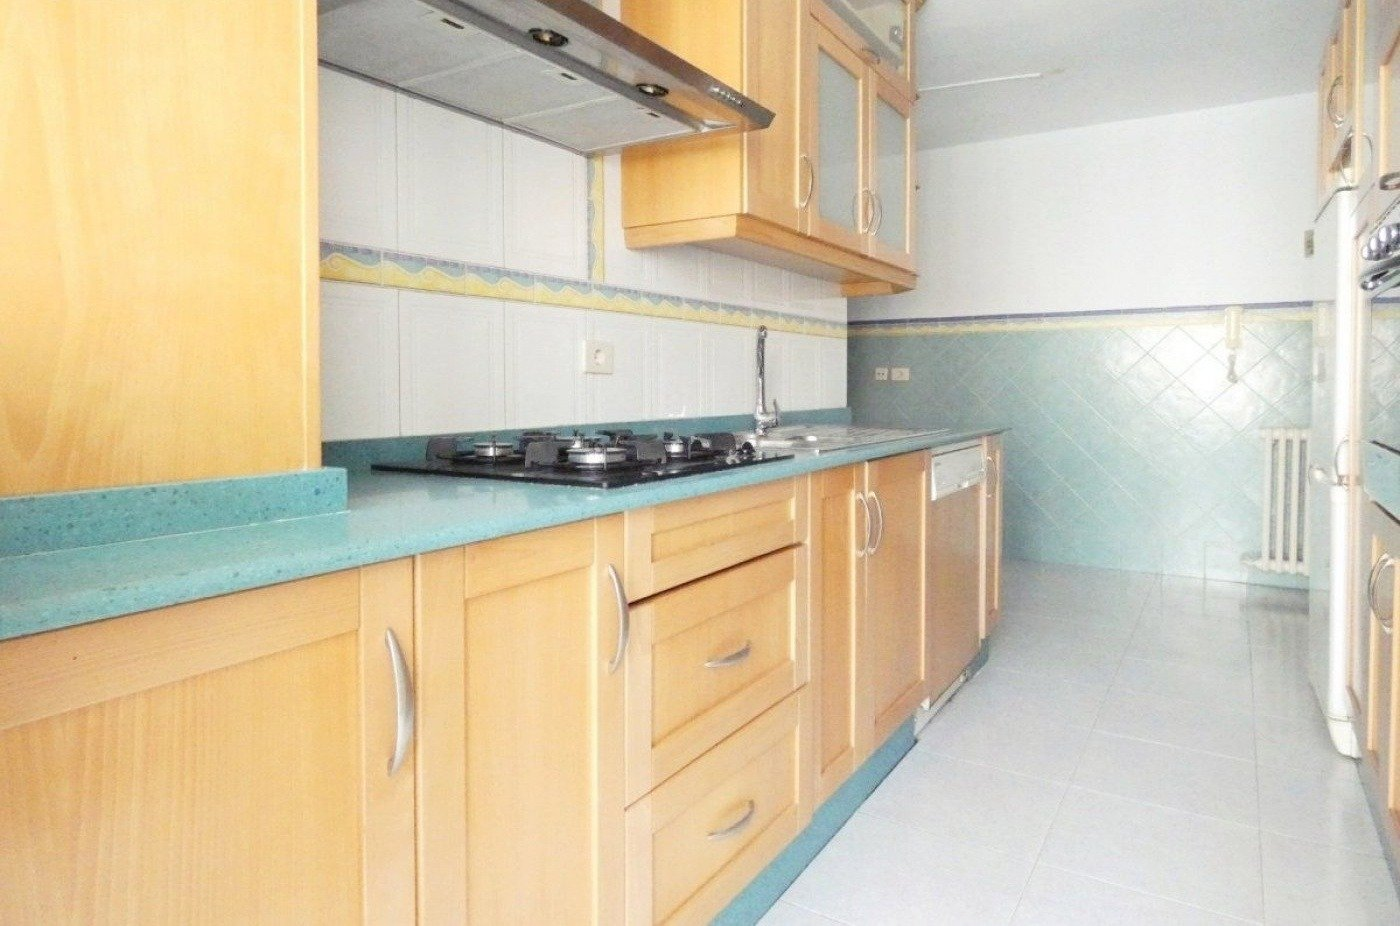 Flat for rent in San Miguel, Murcia